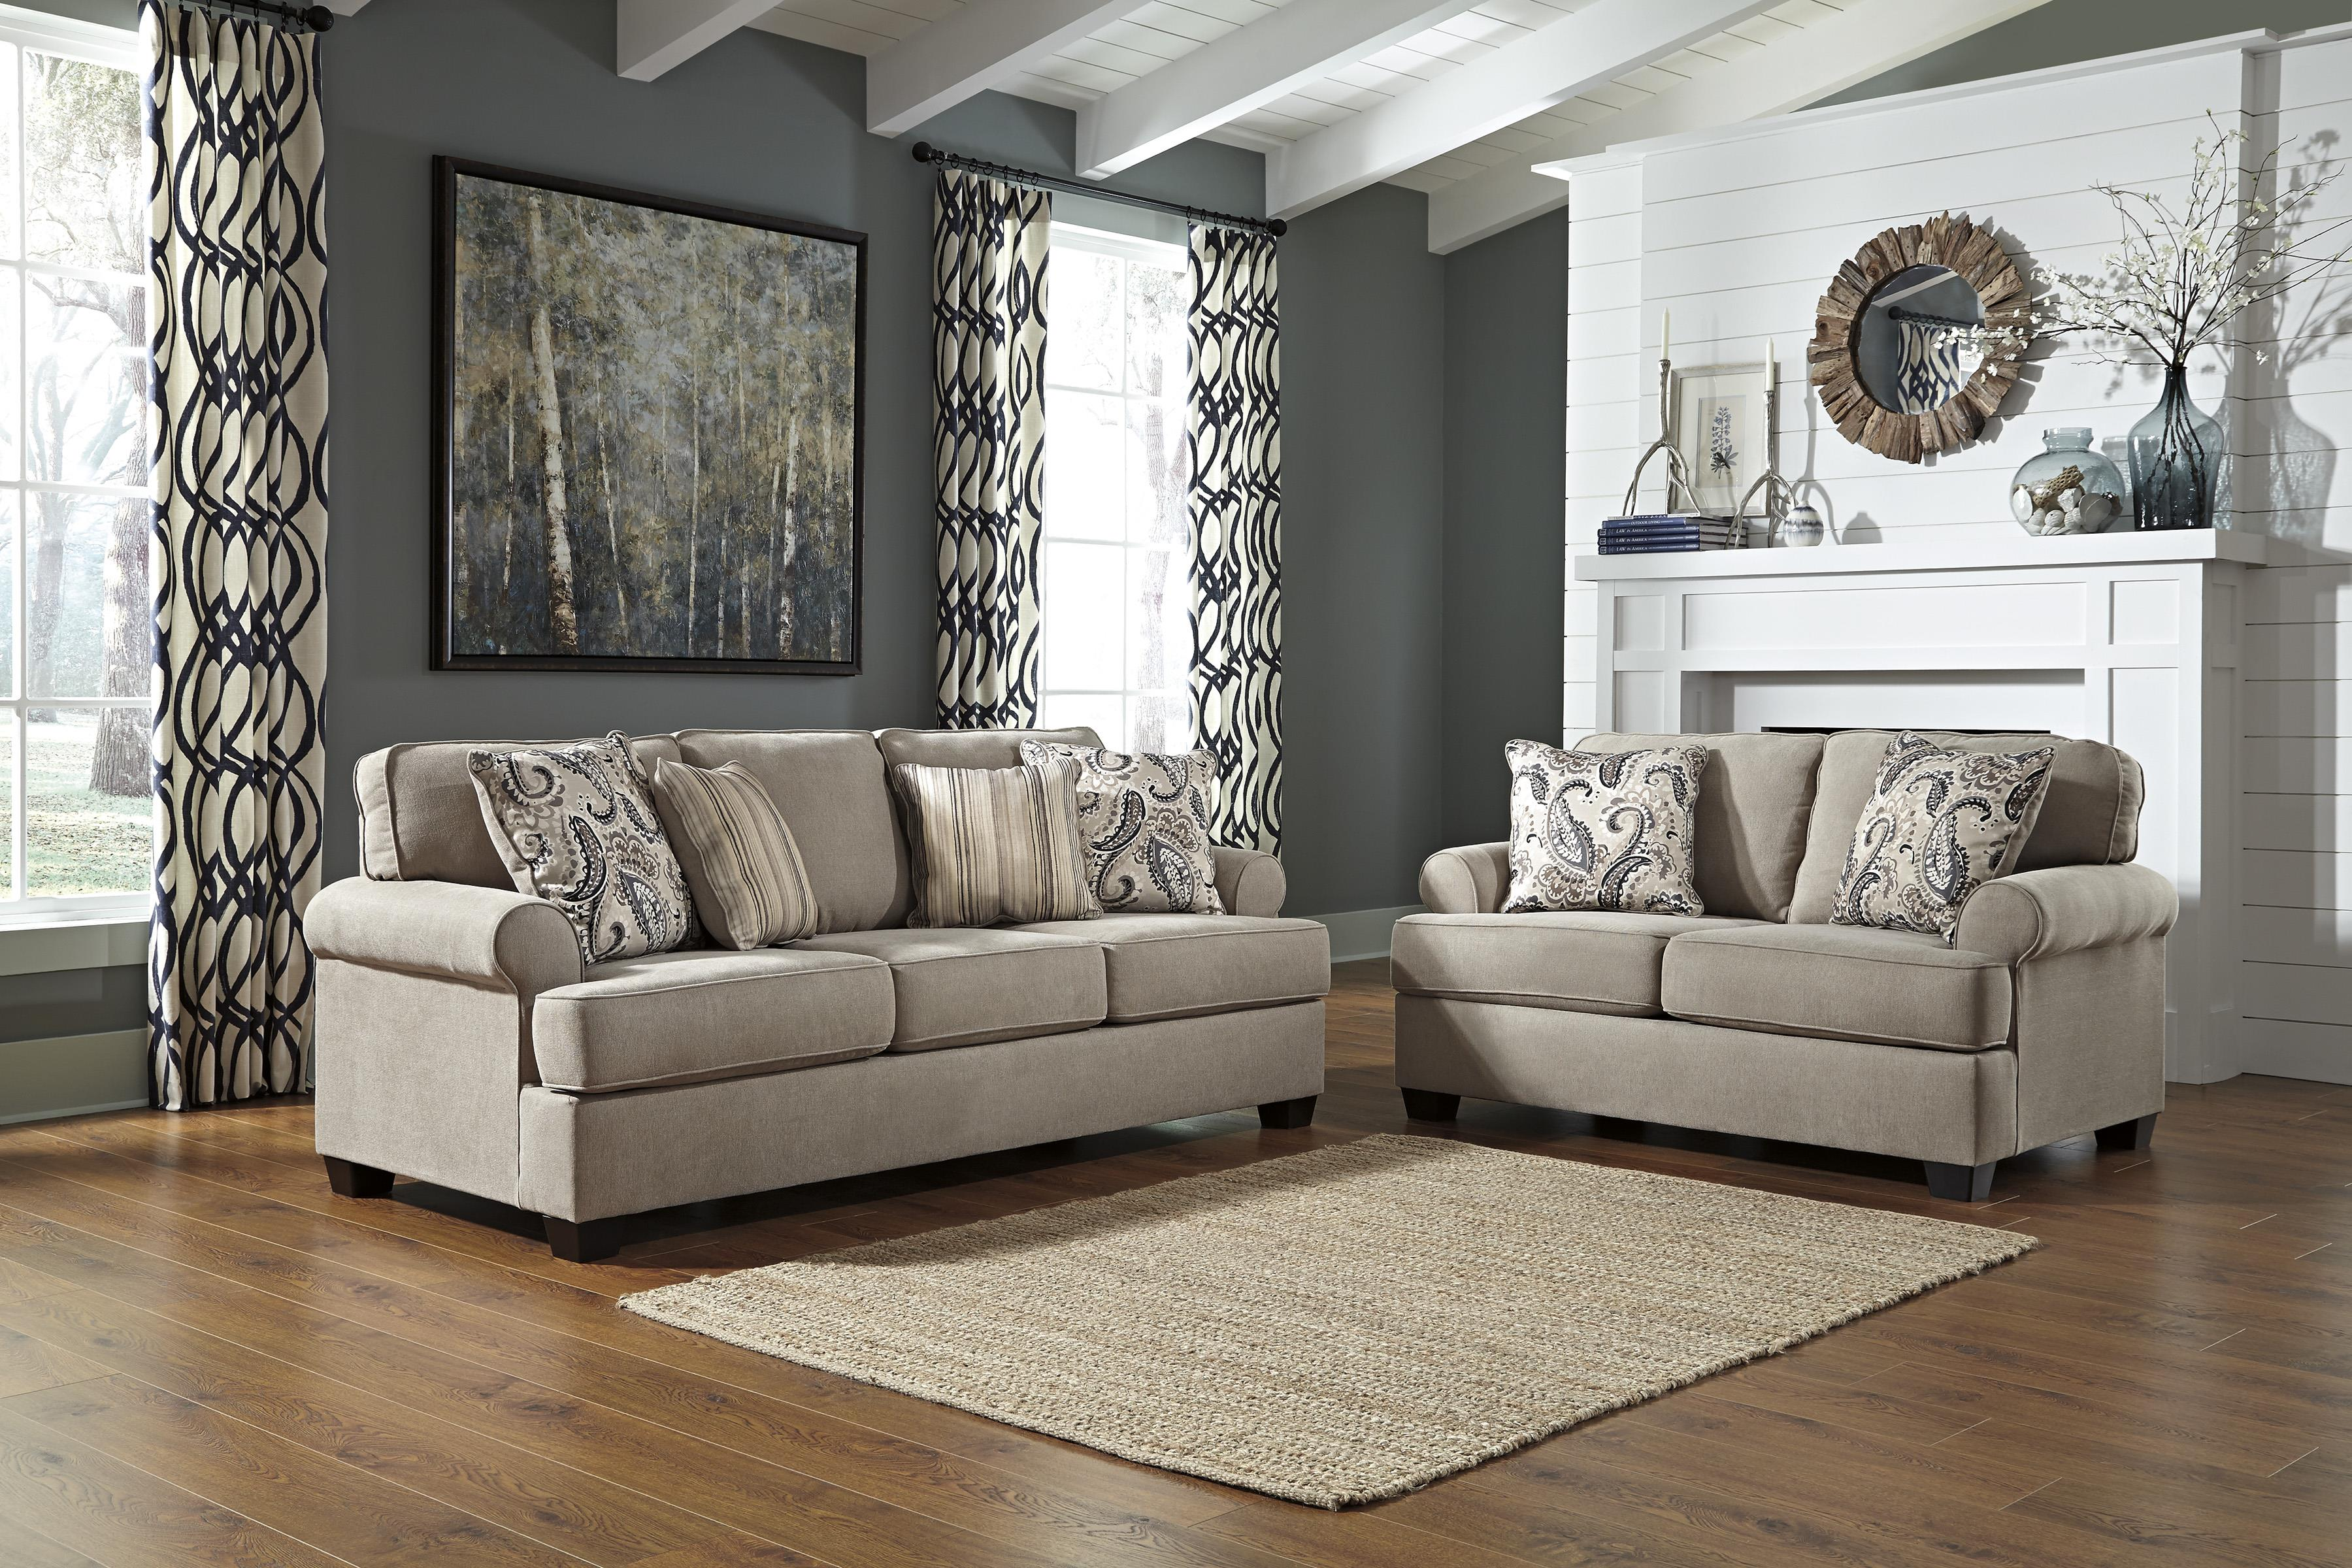 Signature Design by Ashley Melaya Stationary Living Room Group - Item Number: 47800 Living Room Group 1